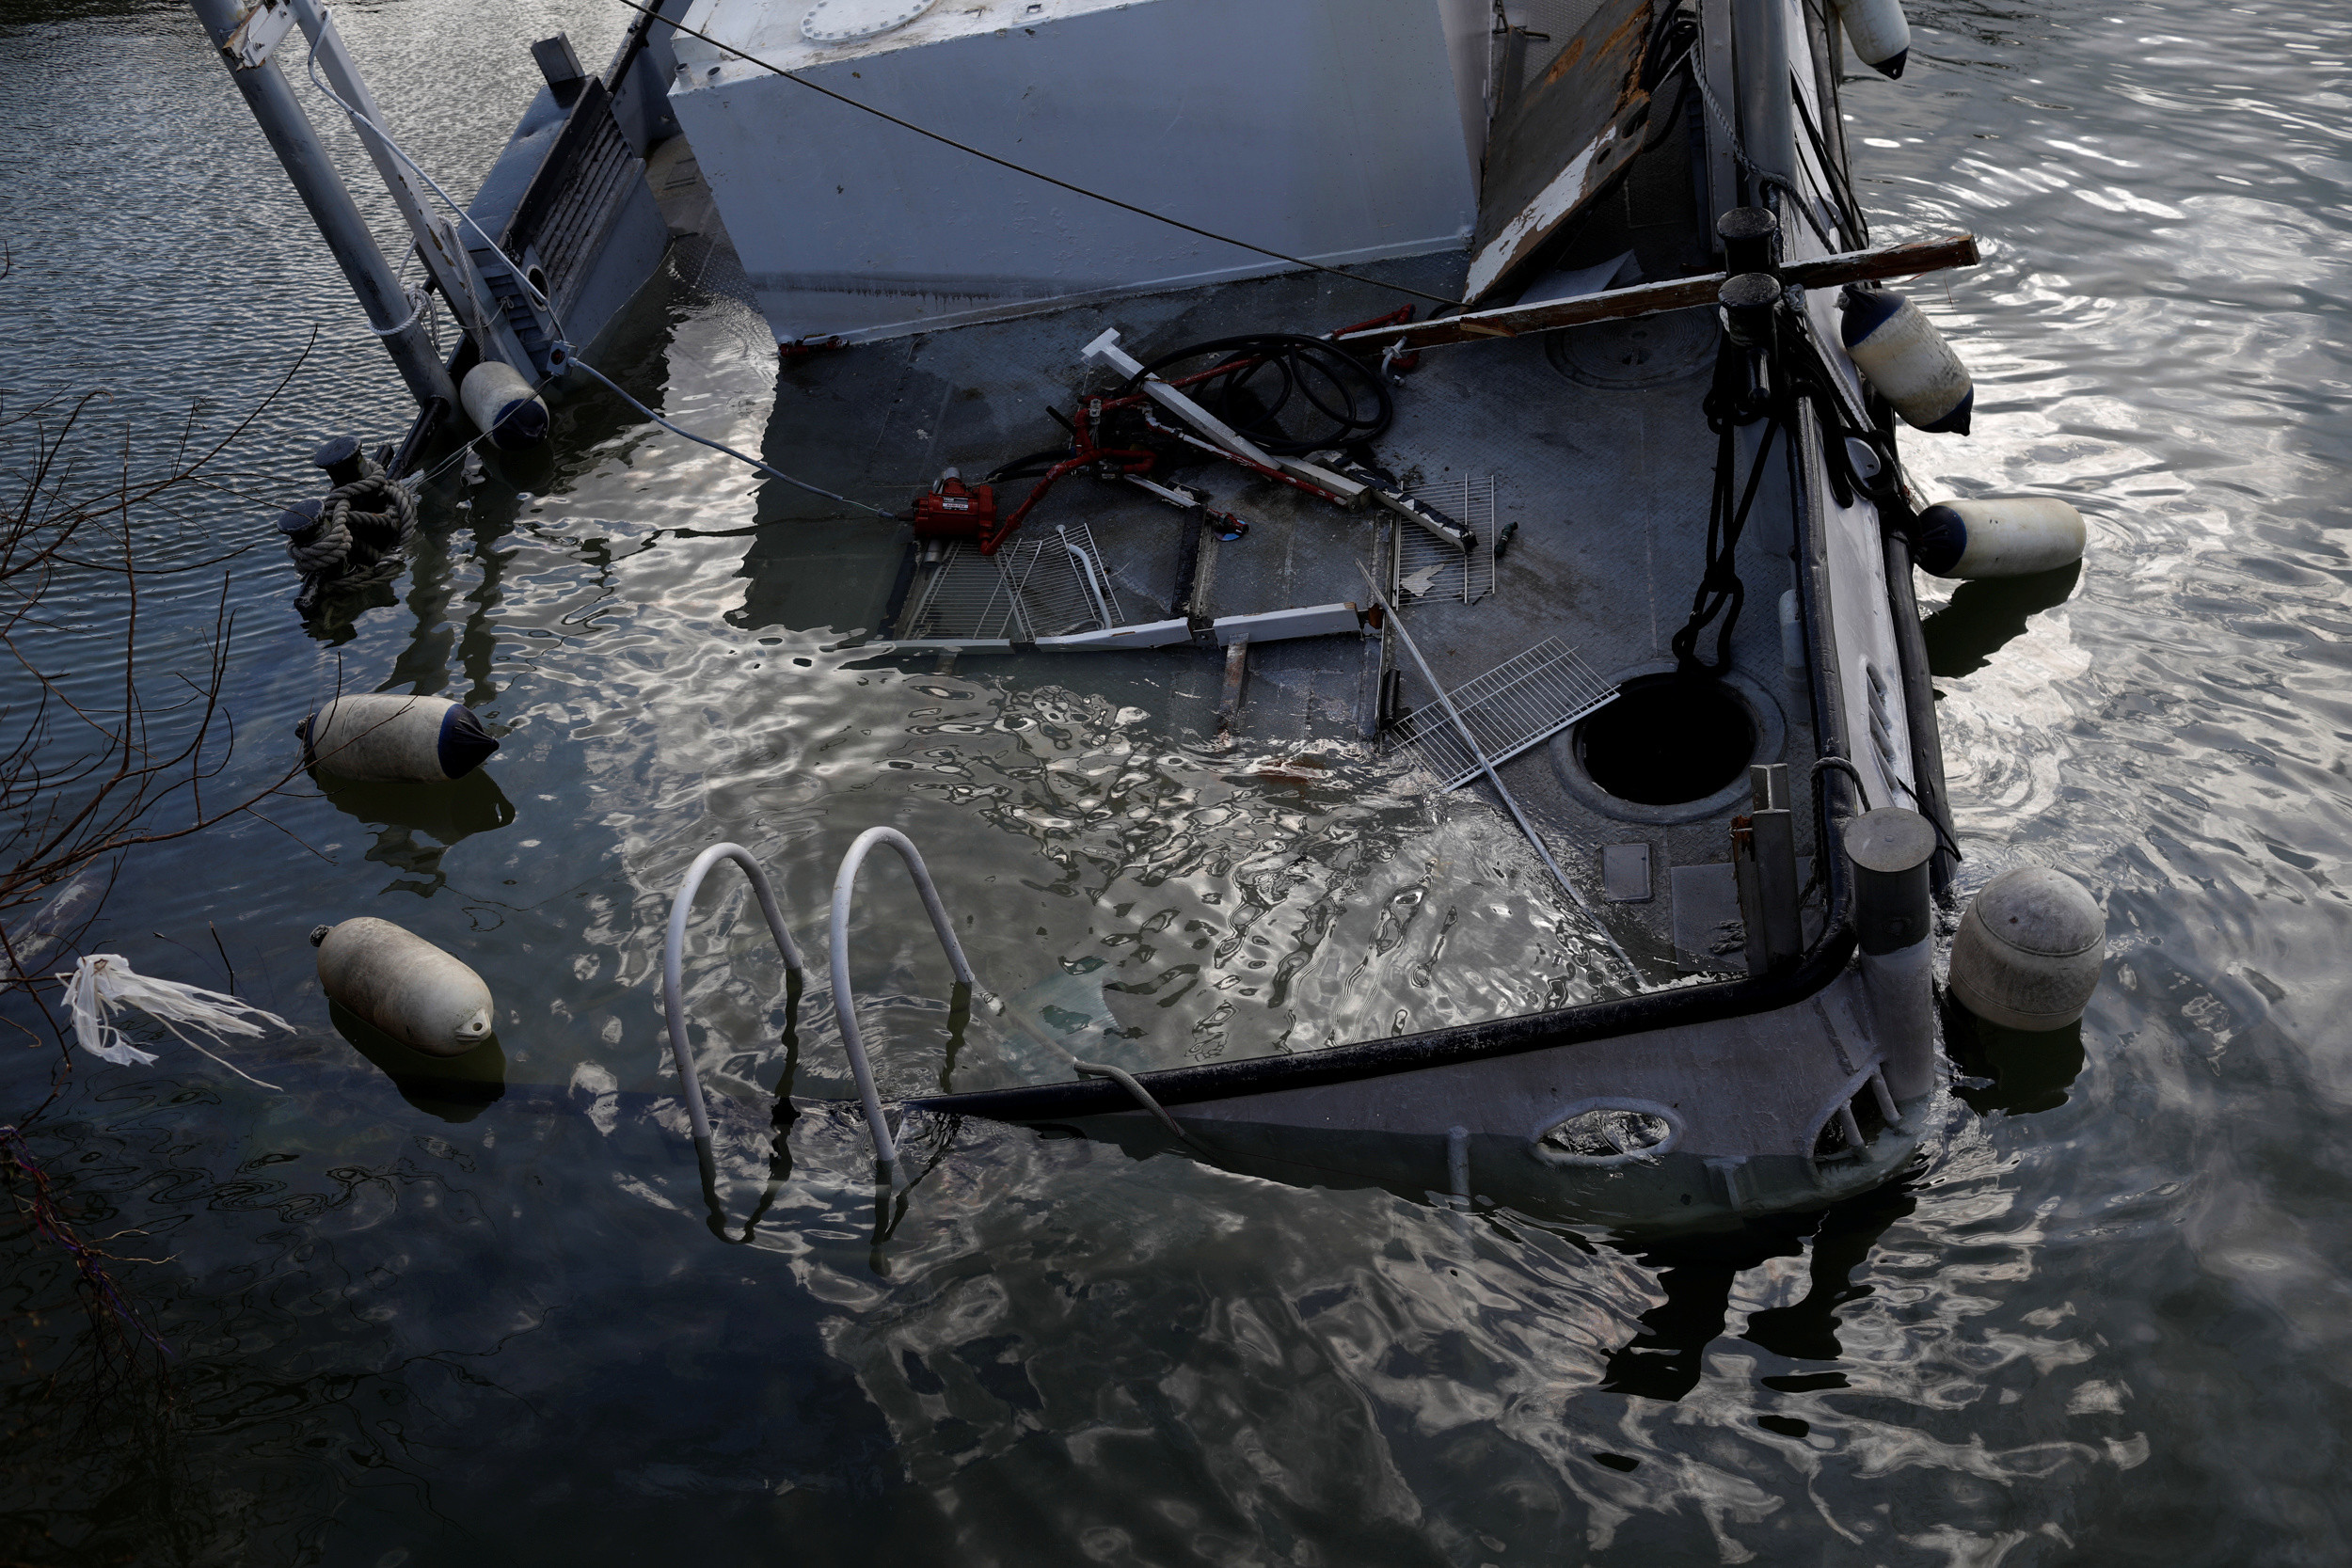 A destroyed boat is seen at a marina after Hurricane Dorian hit the Abaco Islands in Marsh Harbour, Bahamas